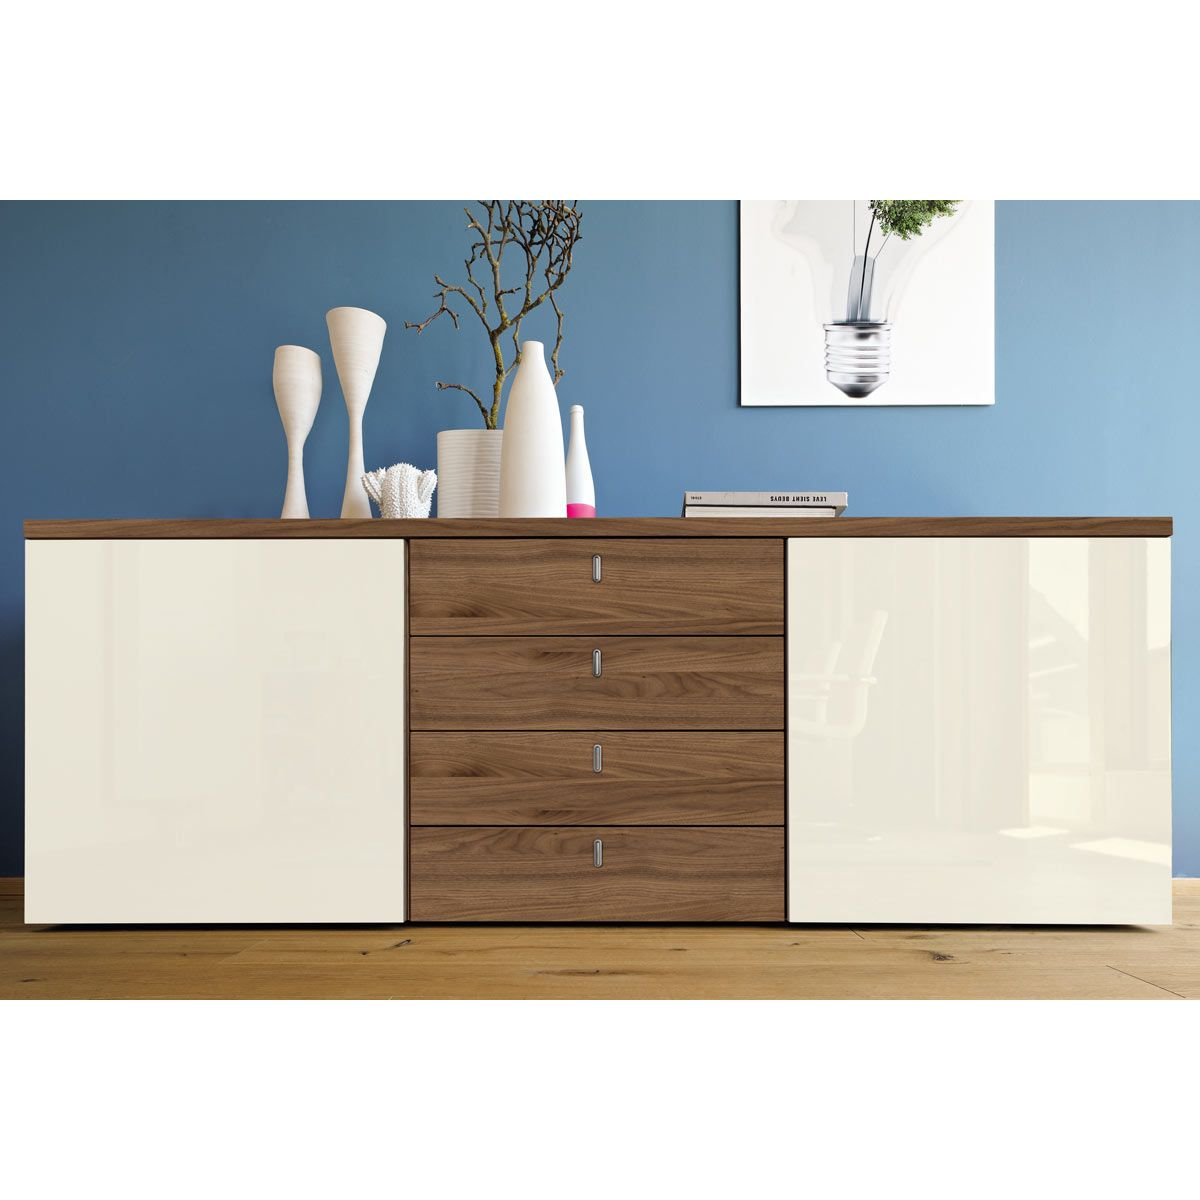 Now Time By Hülsta Sideboard Mit 4 Schubladen